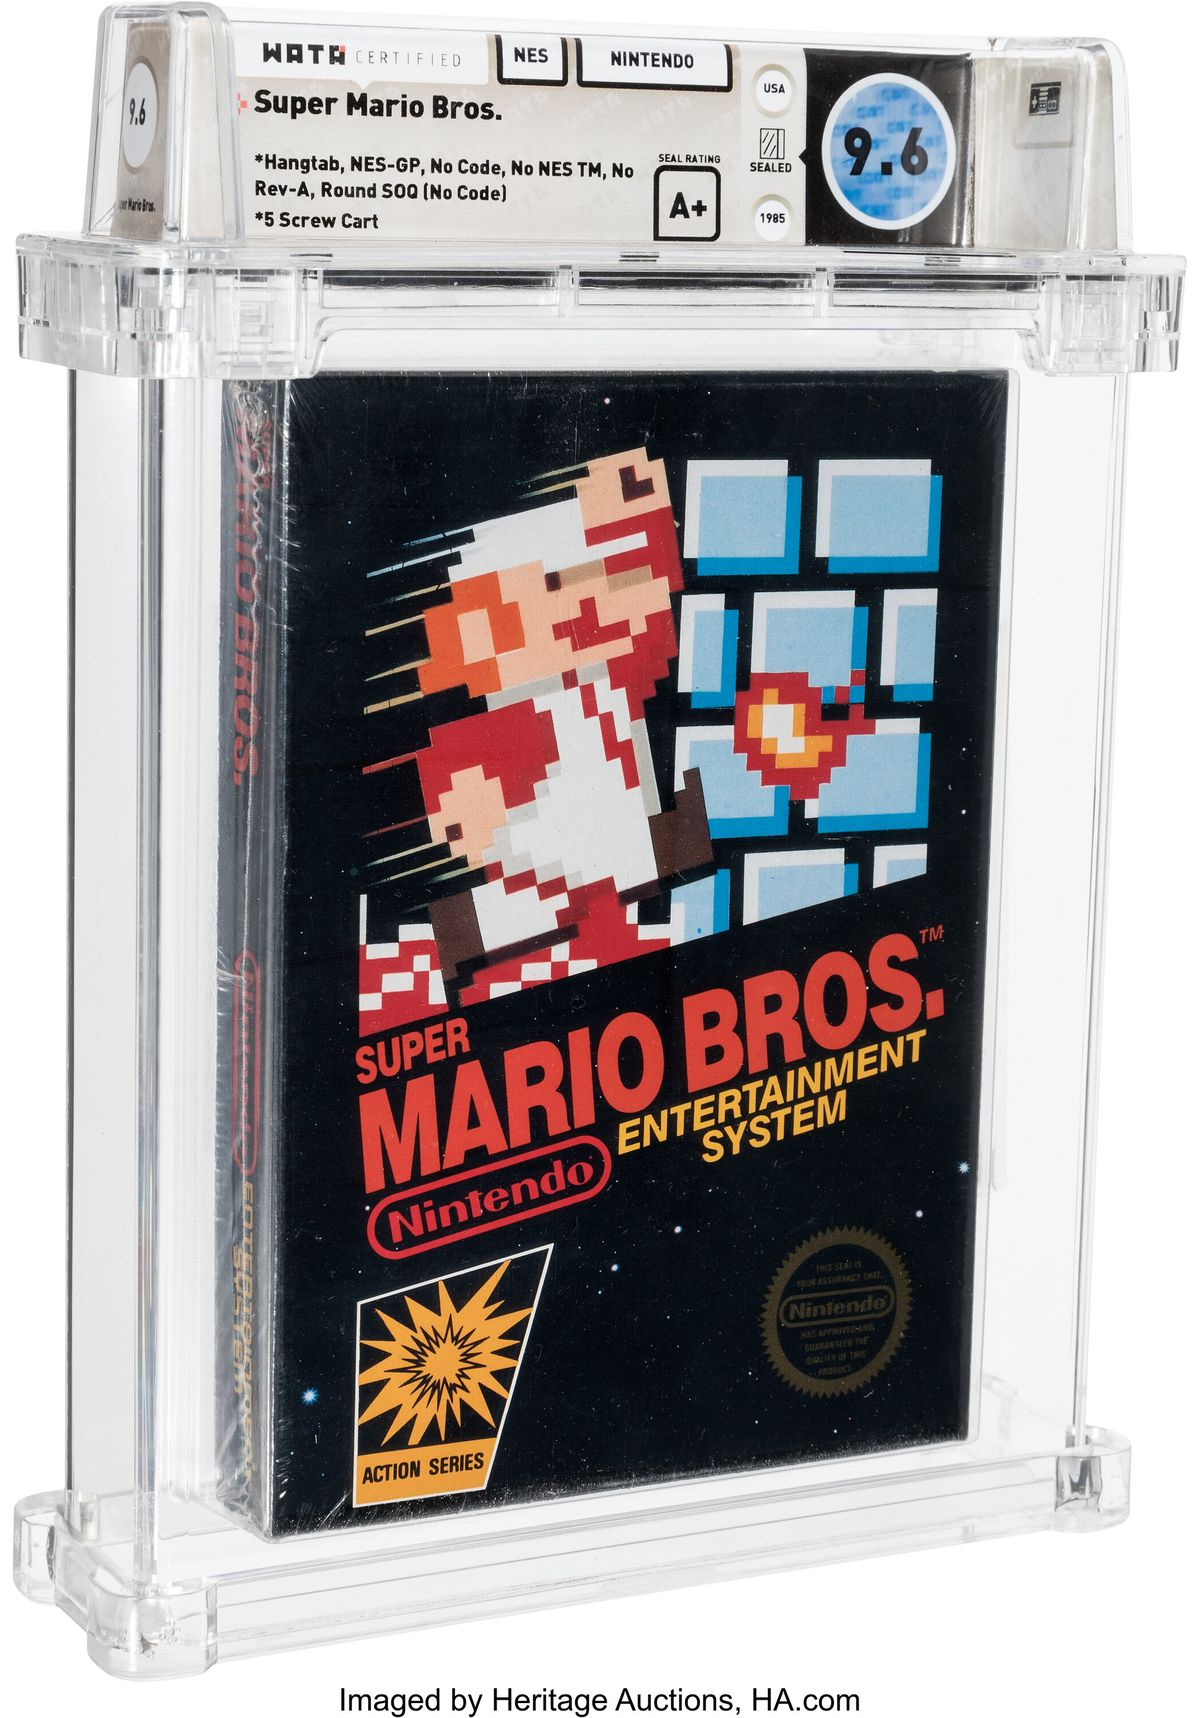 A photo of Super Mario Bros. for NES in acrylic casing